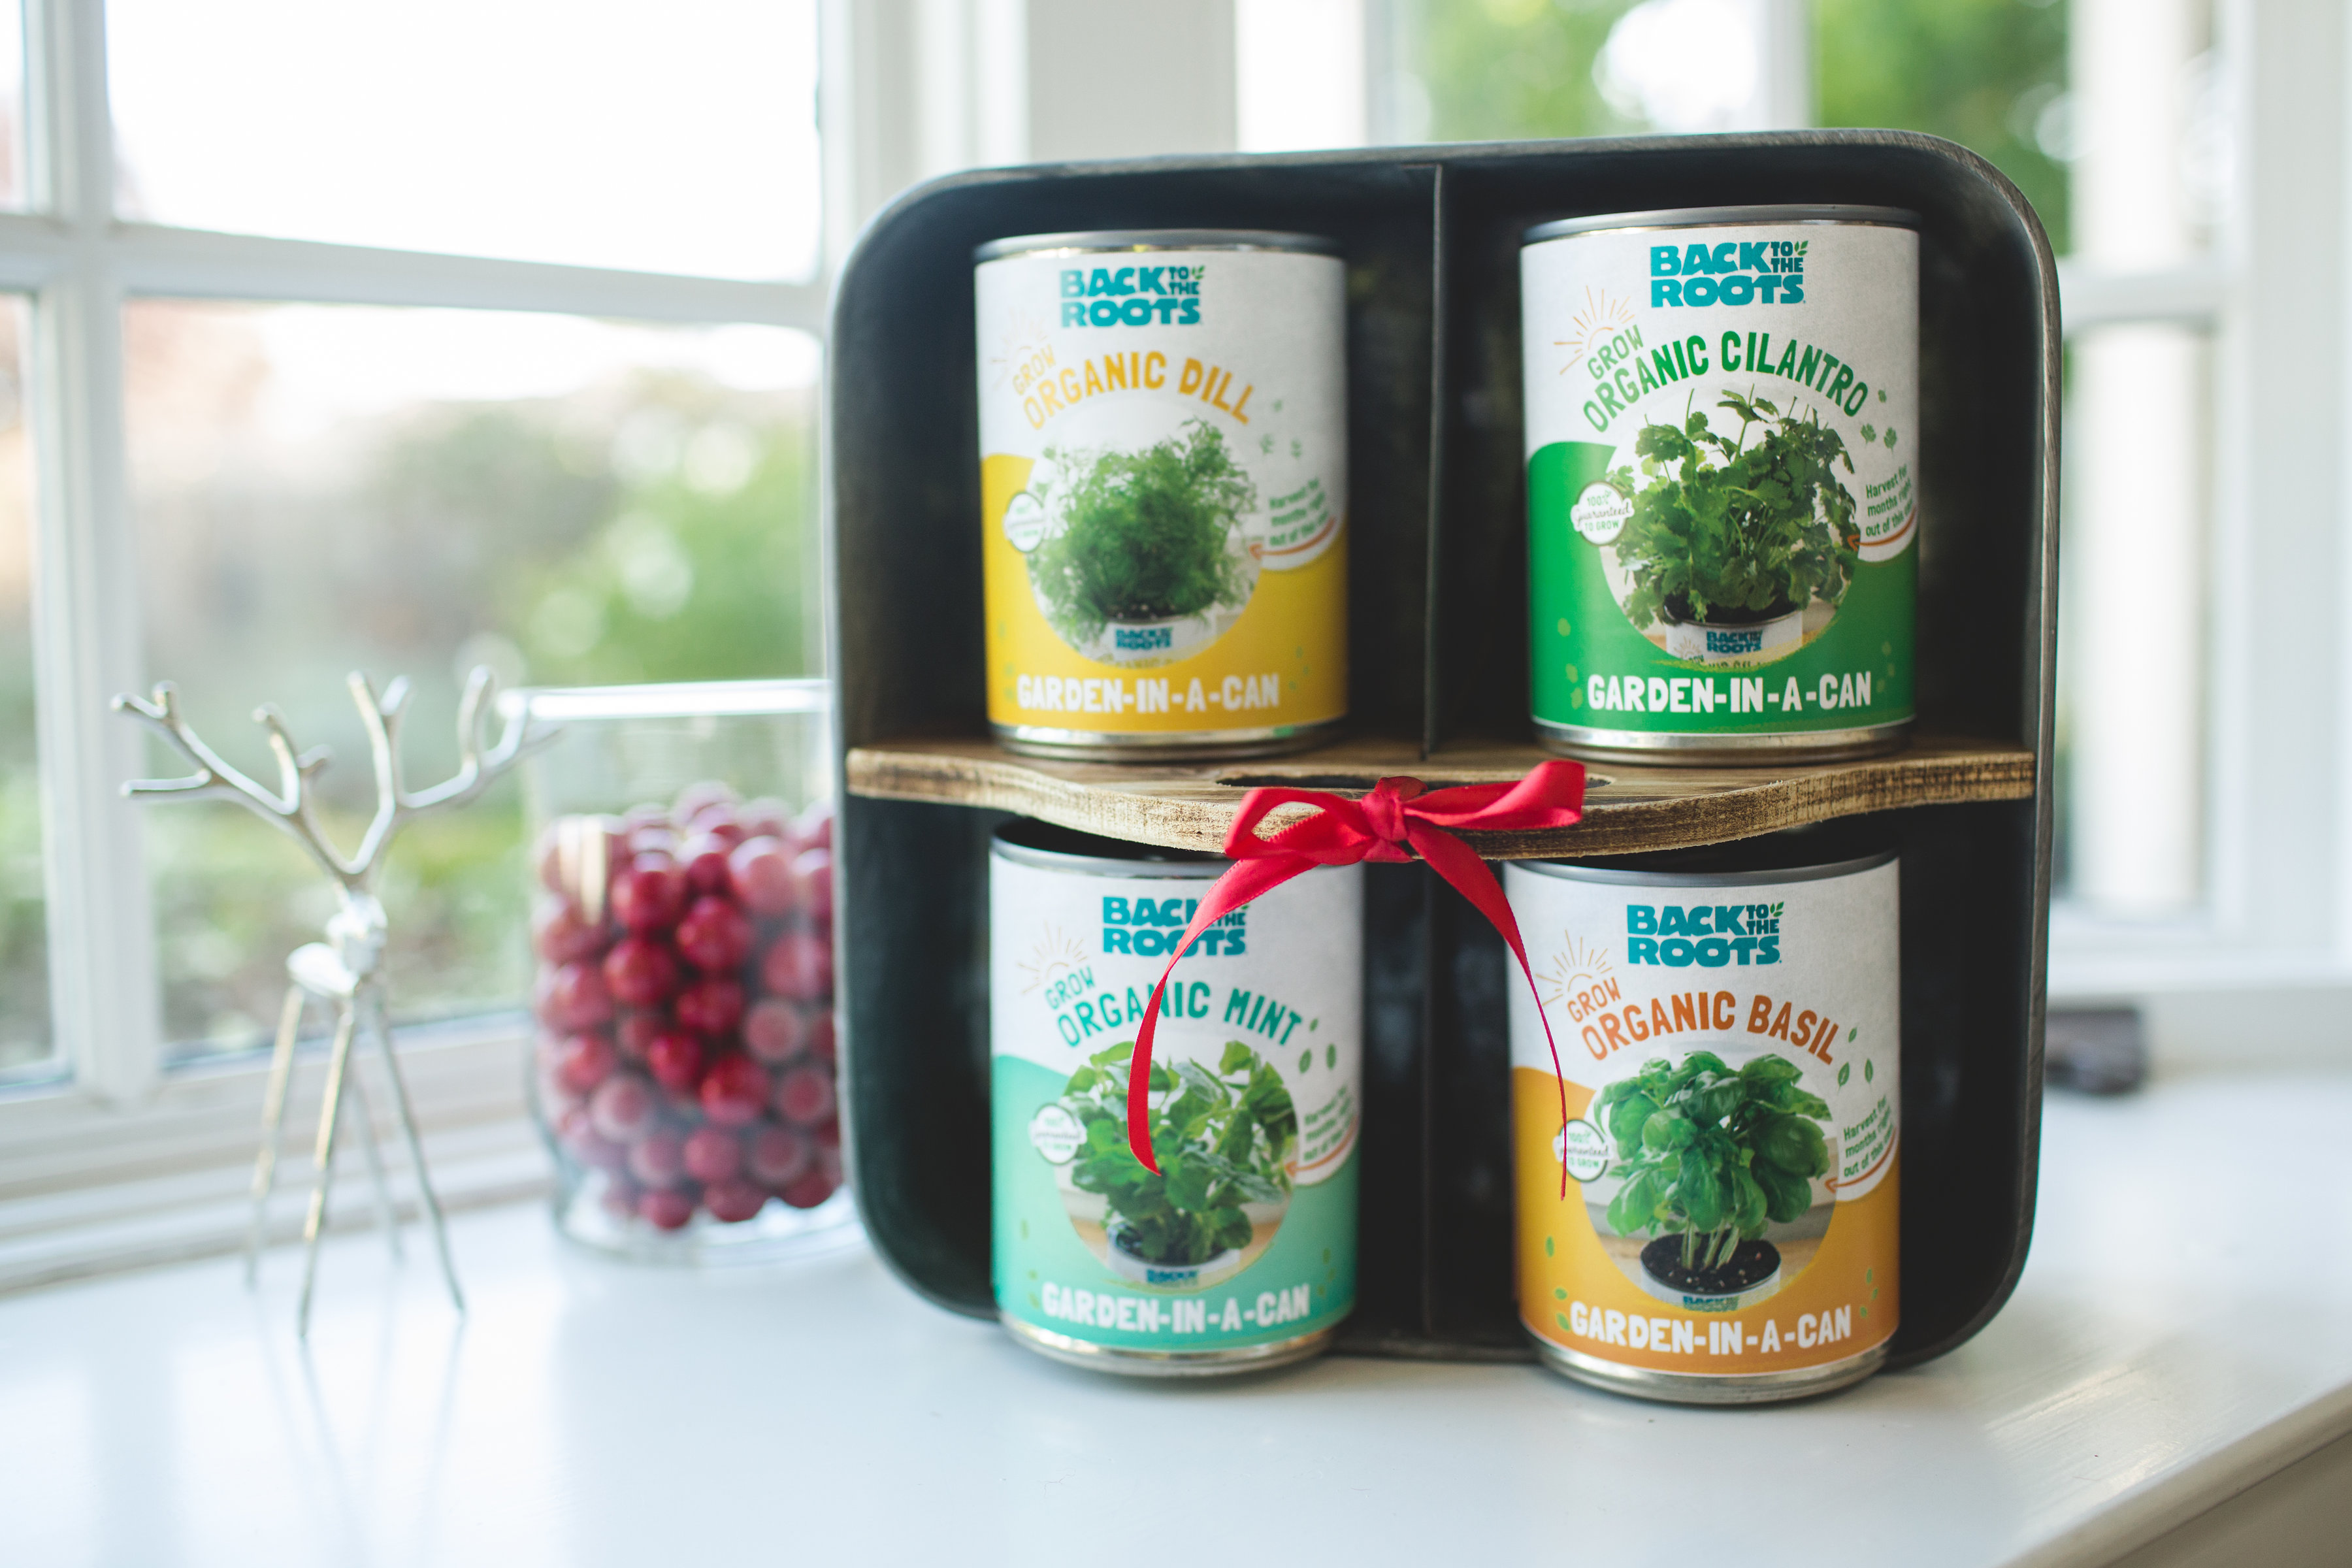 back to the roots garden in a can gift set best green gift best gift for gardeners indoor gardening gift